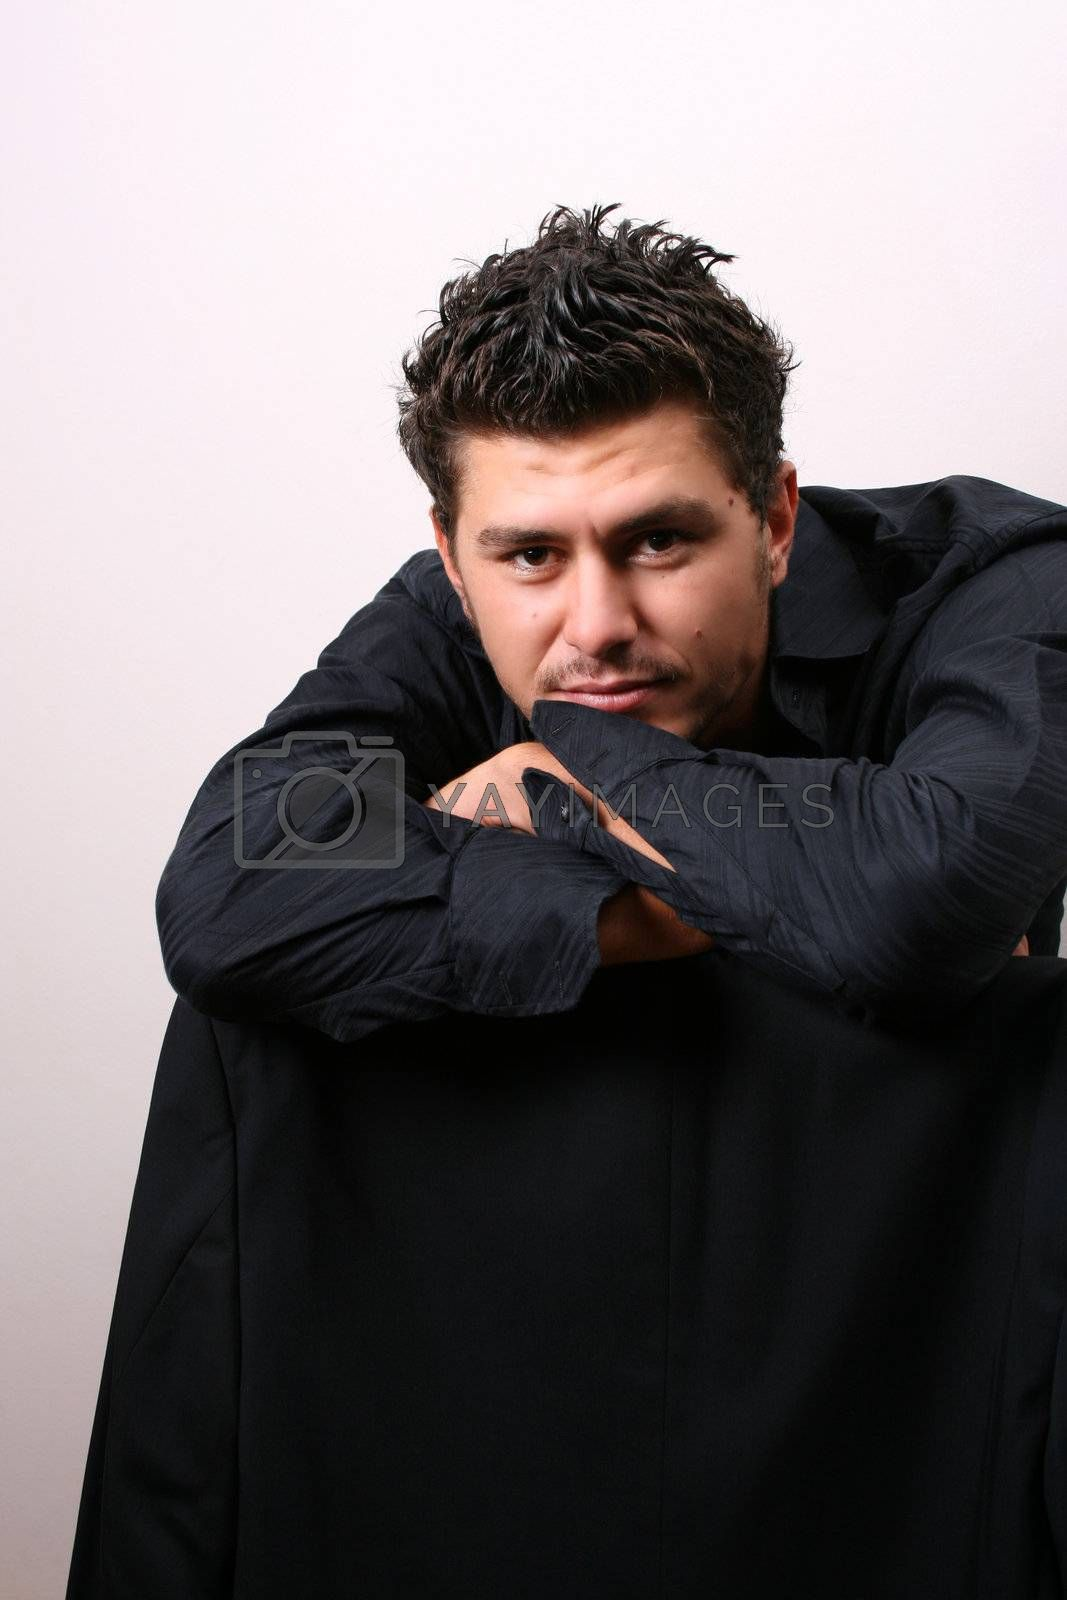 Male model in studio against white wall